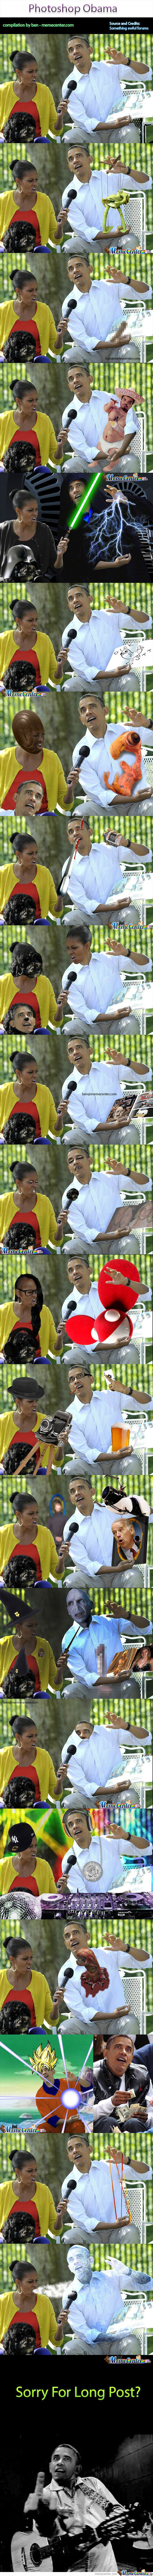 Photoshop Obama